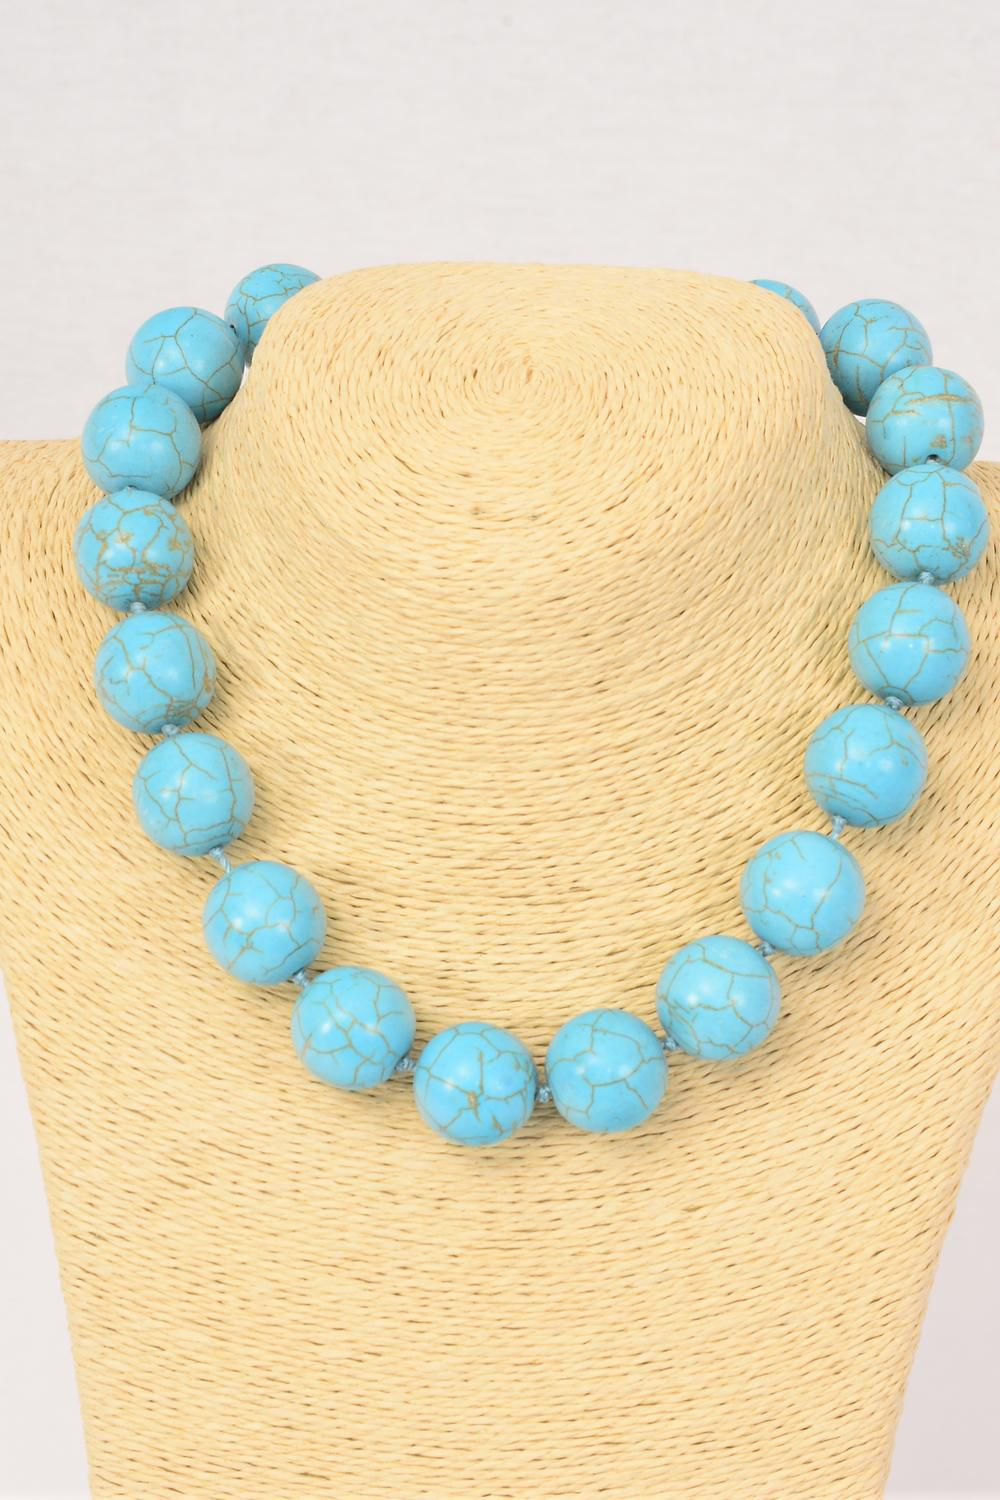 "Necklace 20 mm Turquoise Semiprecious Stones/PC **Turquoise** Size-18"" extension Chain, Hang tag & Opp Bag & UPC Code"